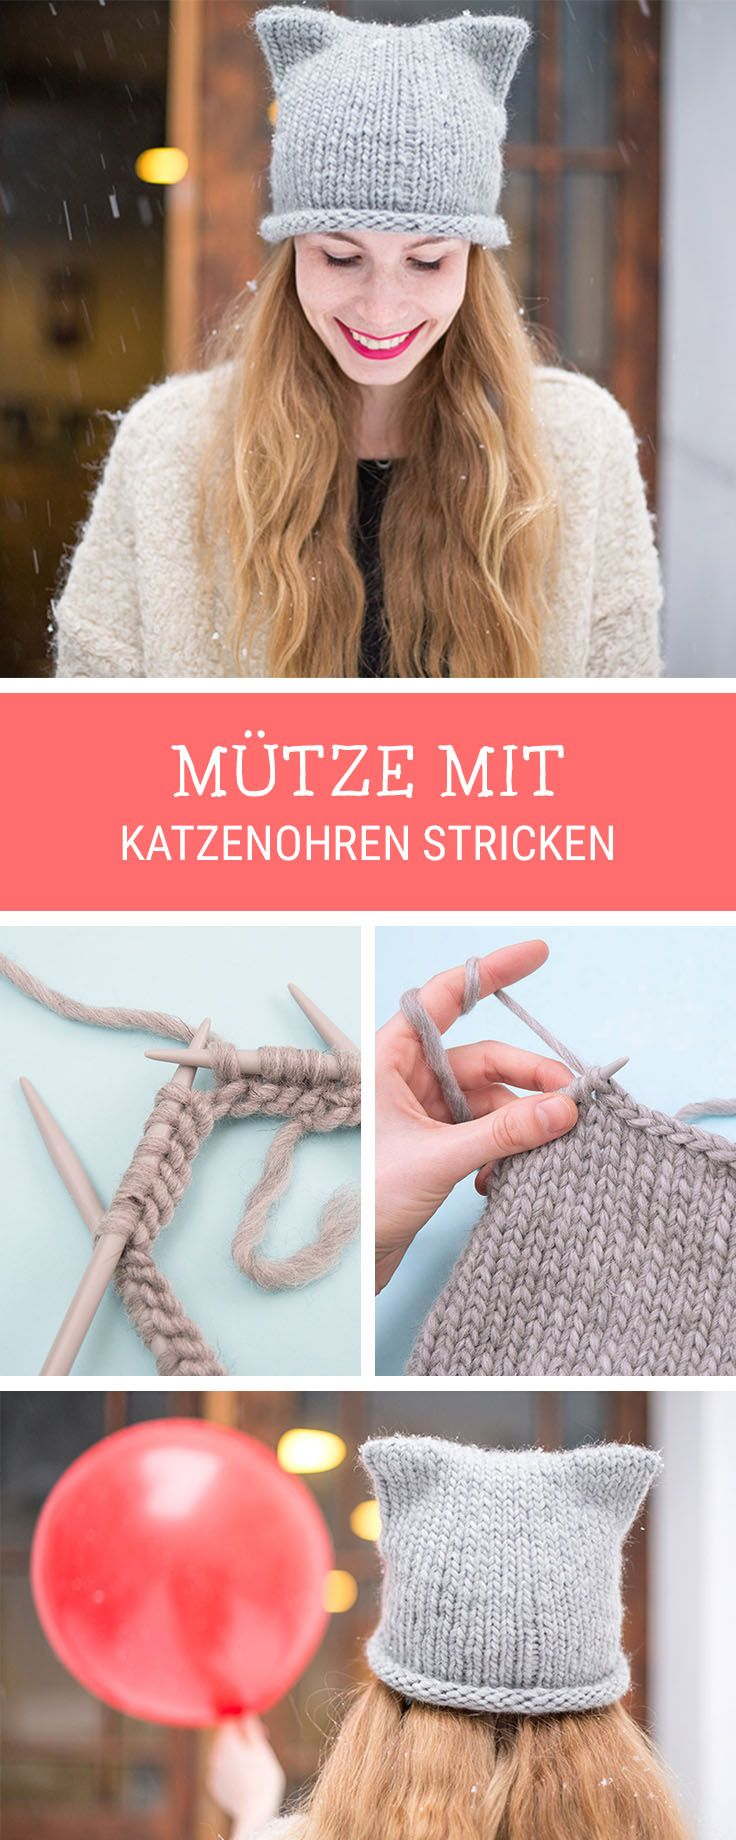 Strickanleitung: Süße Katzenmütze mit Ohren stricken / knitting inspiration for a knitted beanie with cat ears via DaWanda.com